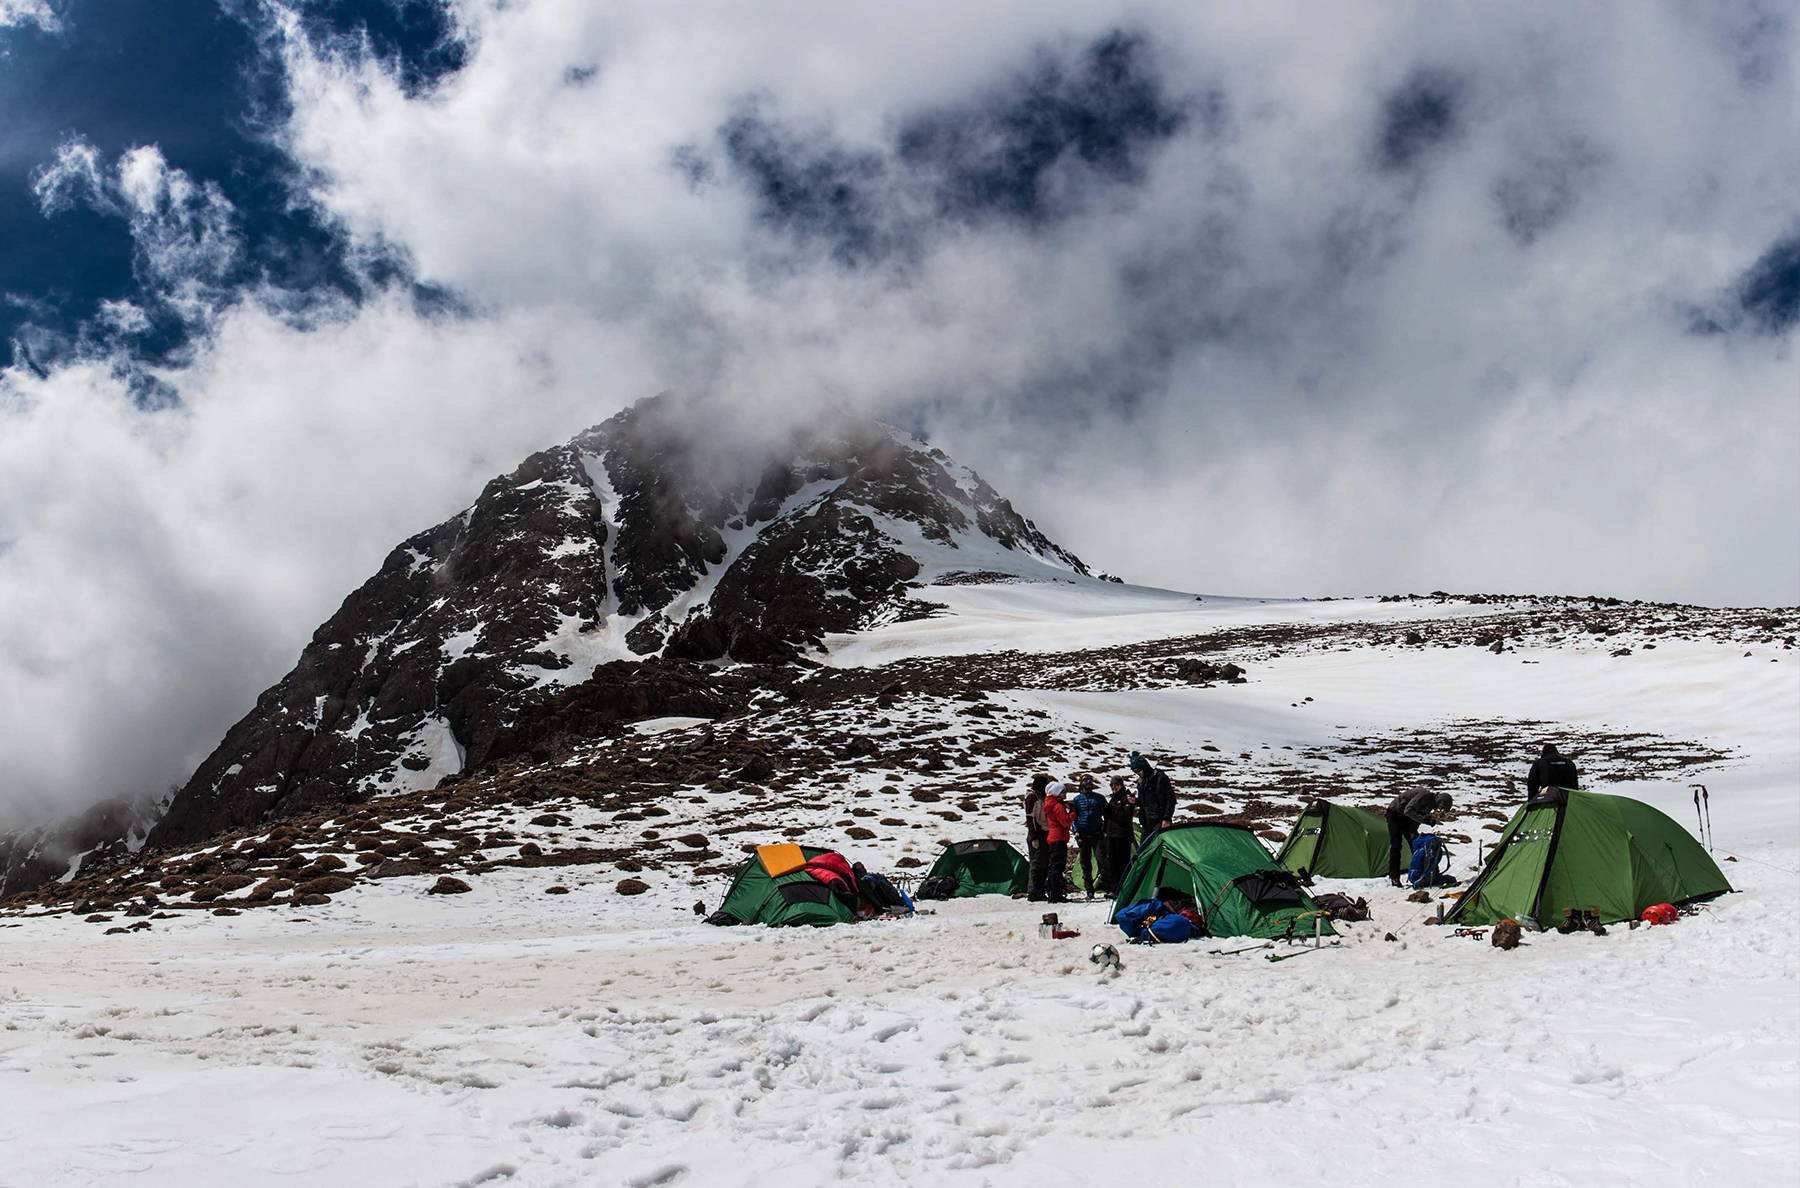 wild camping, mountaineering, adventure, photography, expedition